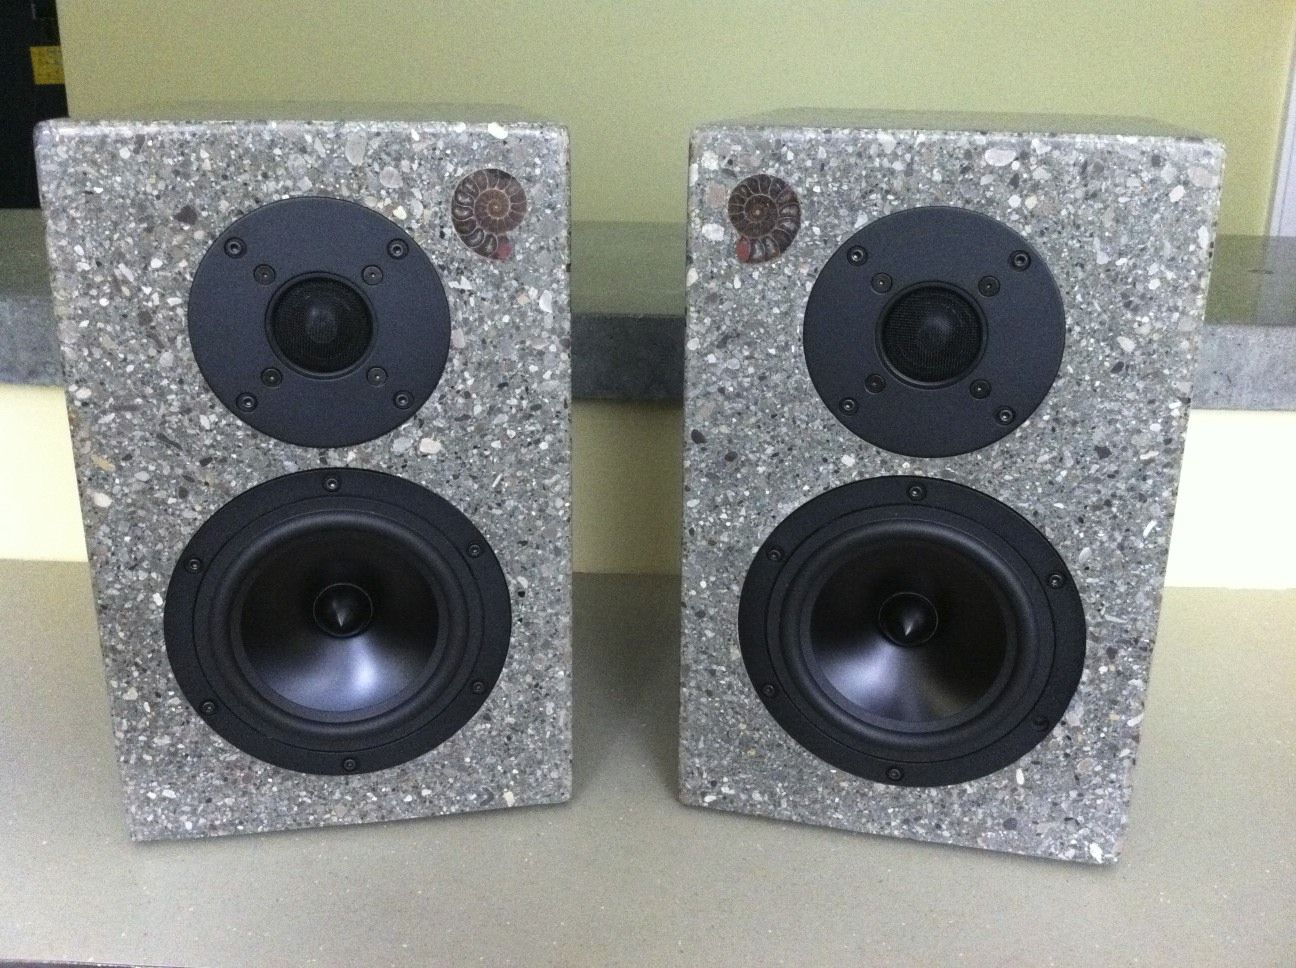 Skema box speaker woofer search results woodworking project ideas - Concrete Speakers Project